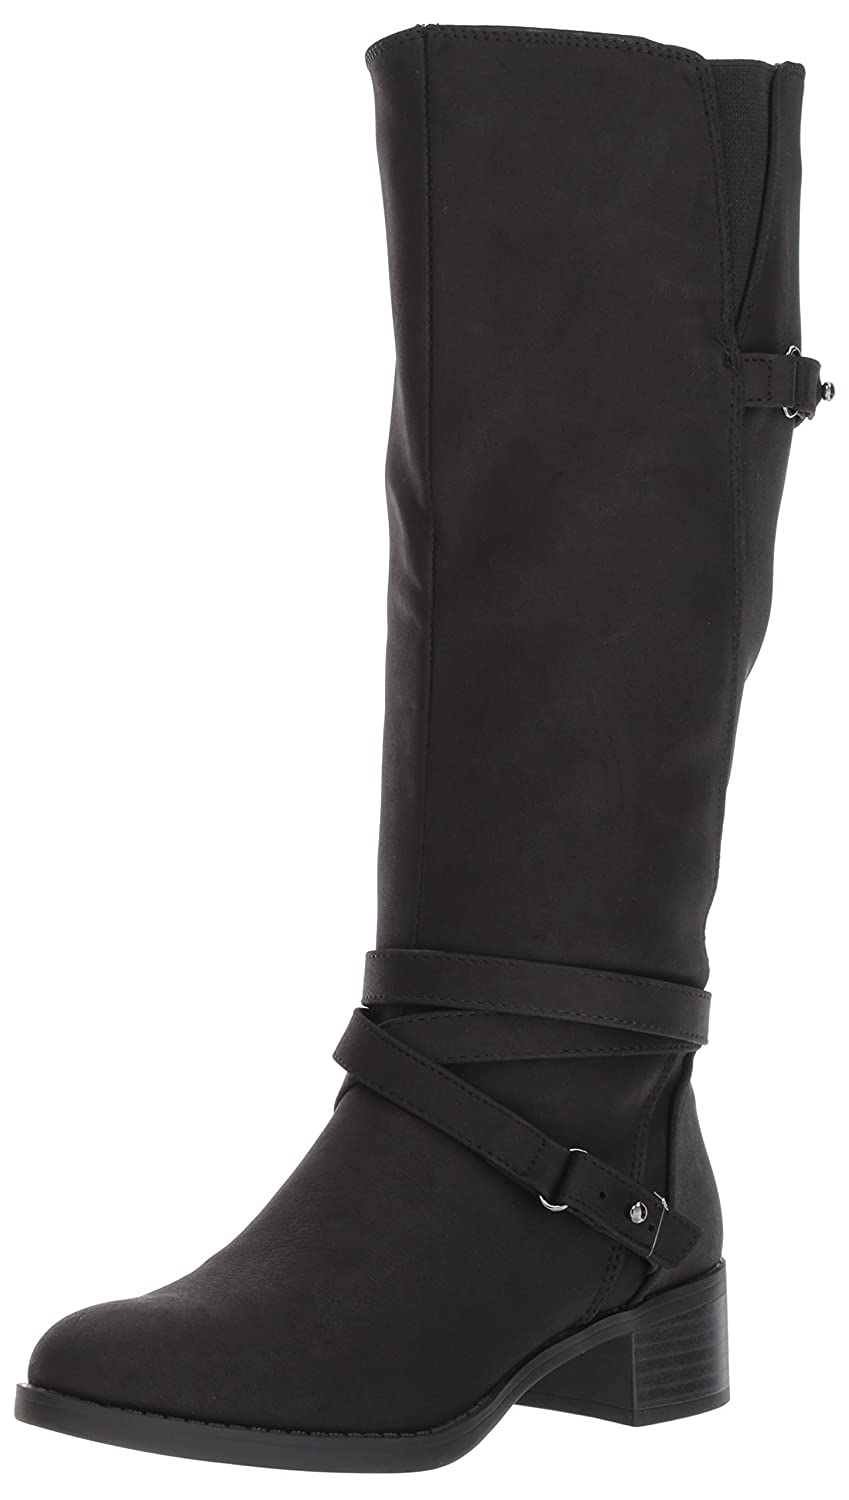 Easy Street Women's Carlita Plus Harness Boot B0728P5QRW 7 W US|Black